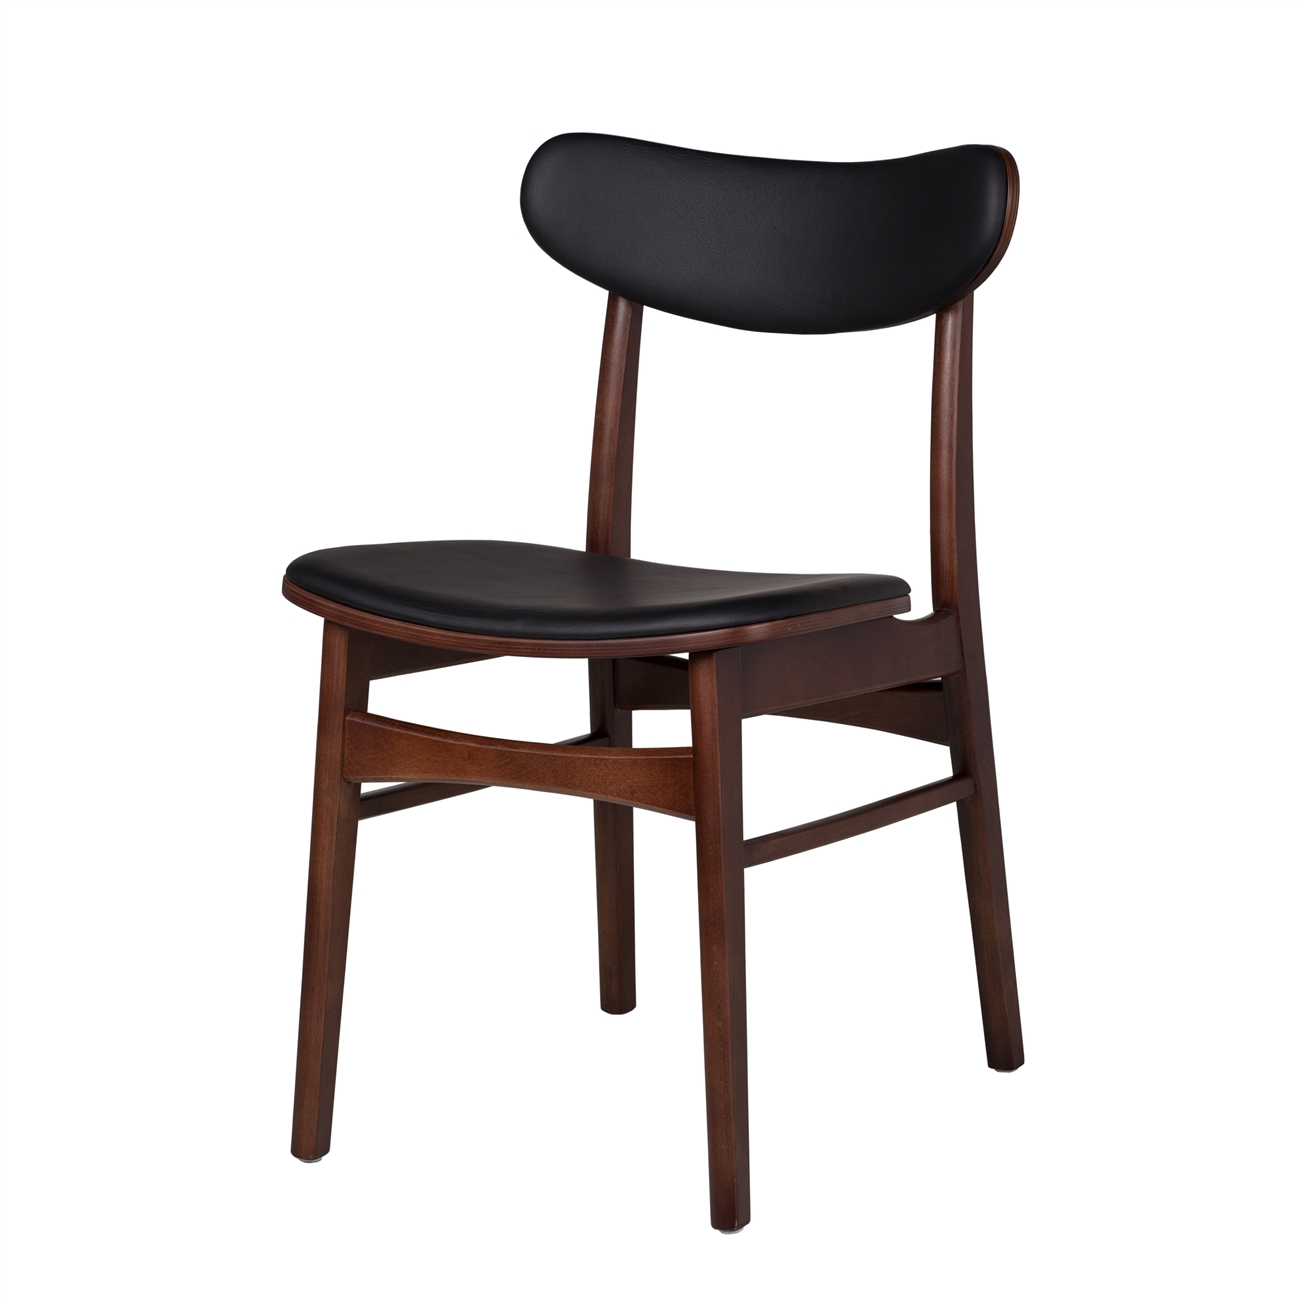 Baumritter Style Dining Chair With Black Leather Upholstery